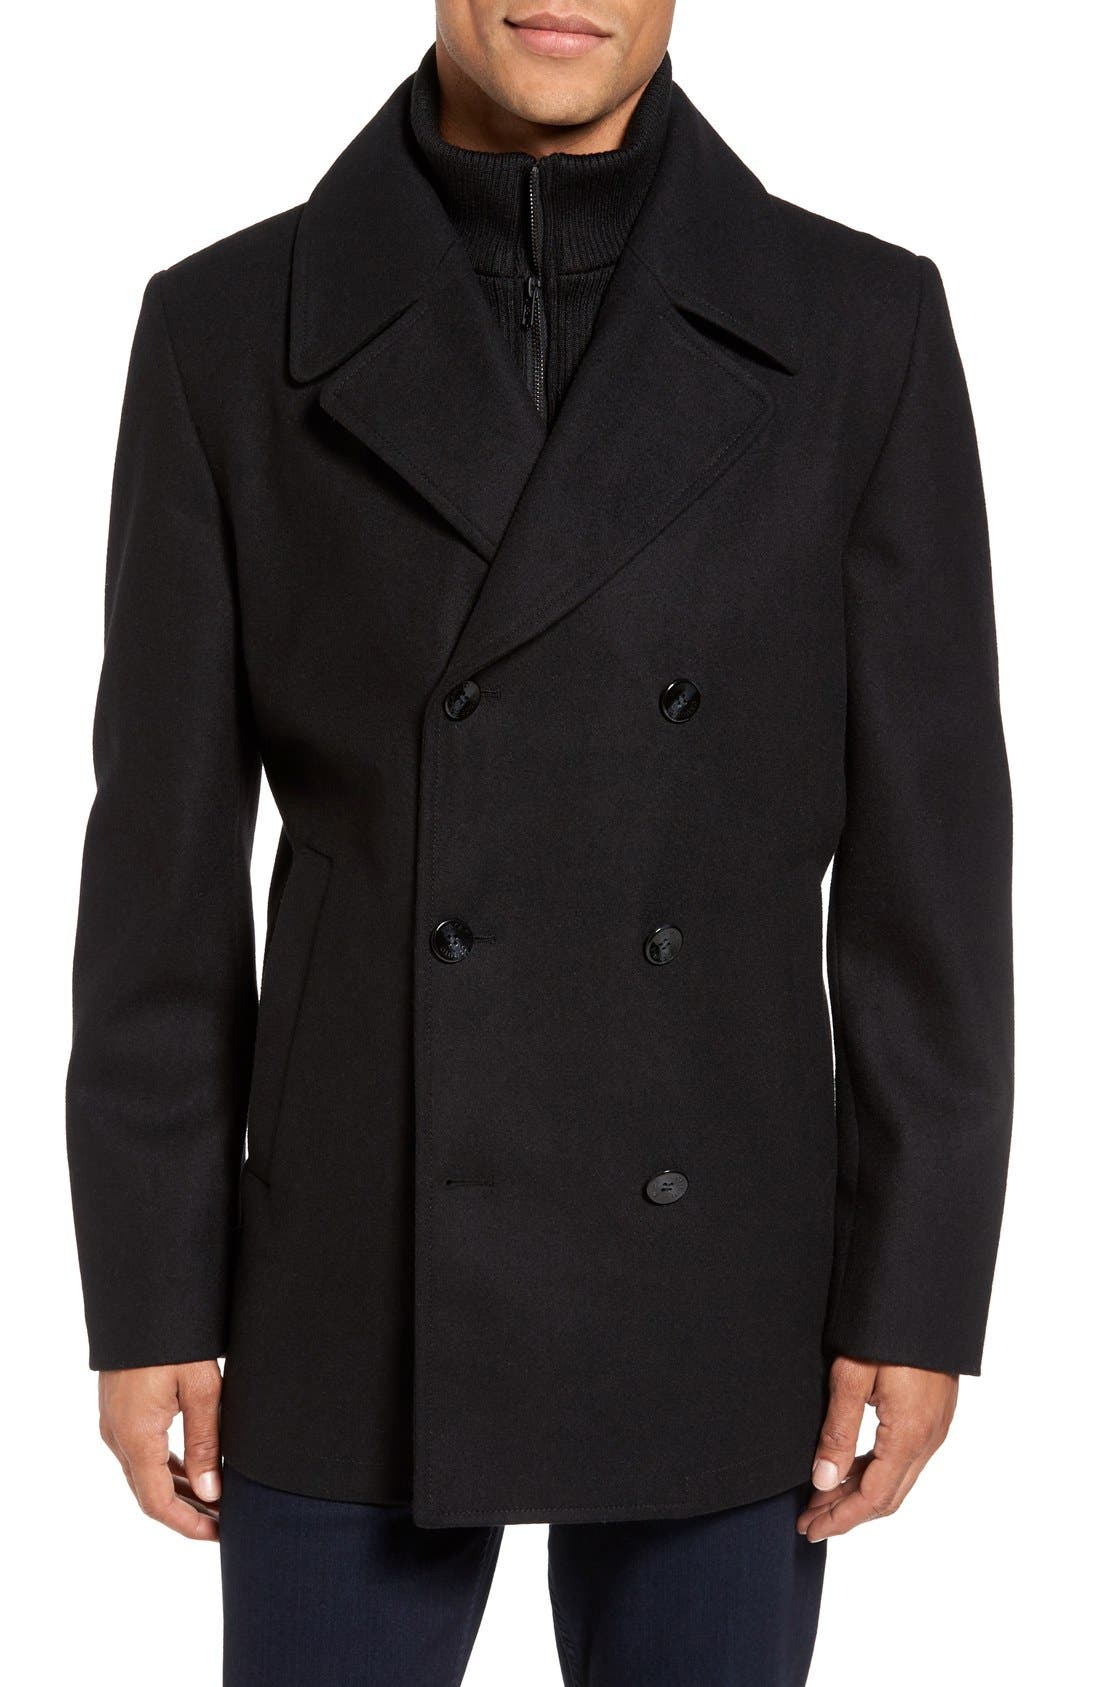 Dock Peacoat,                         Main,                         color, Black